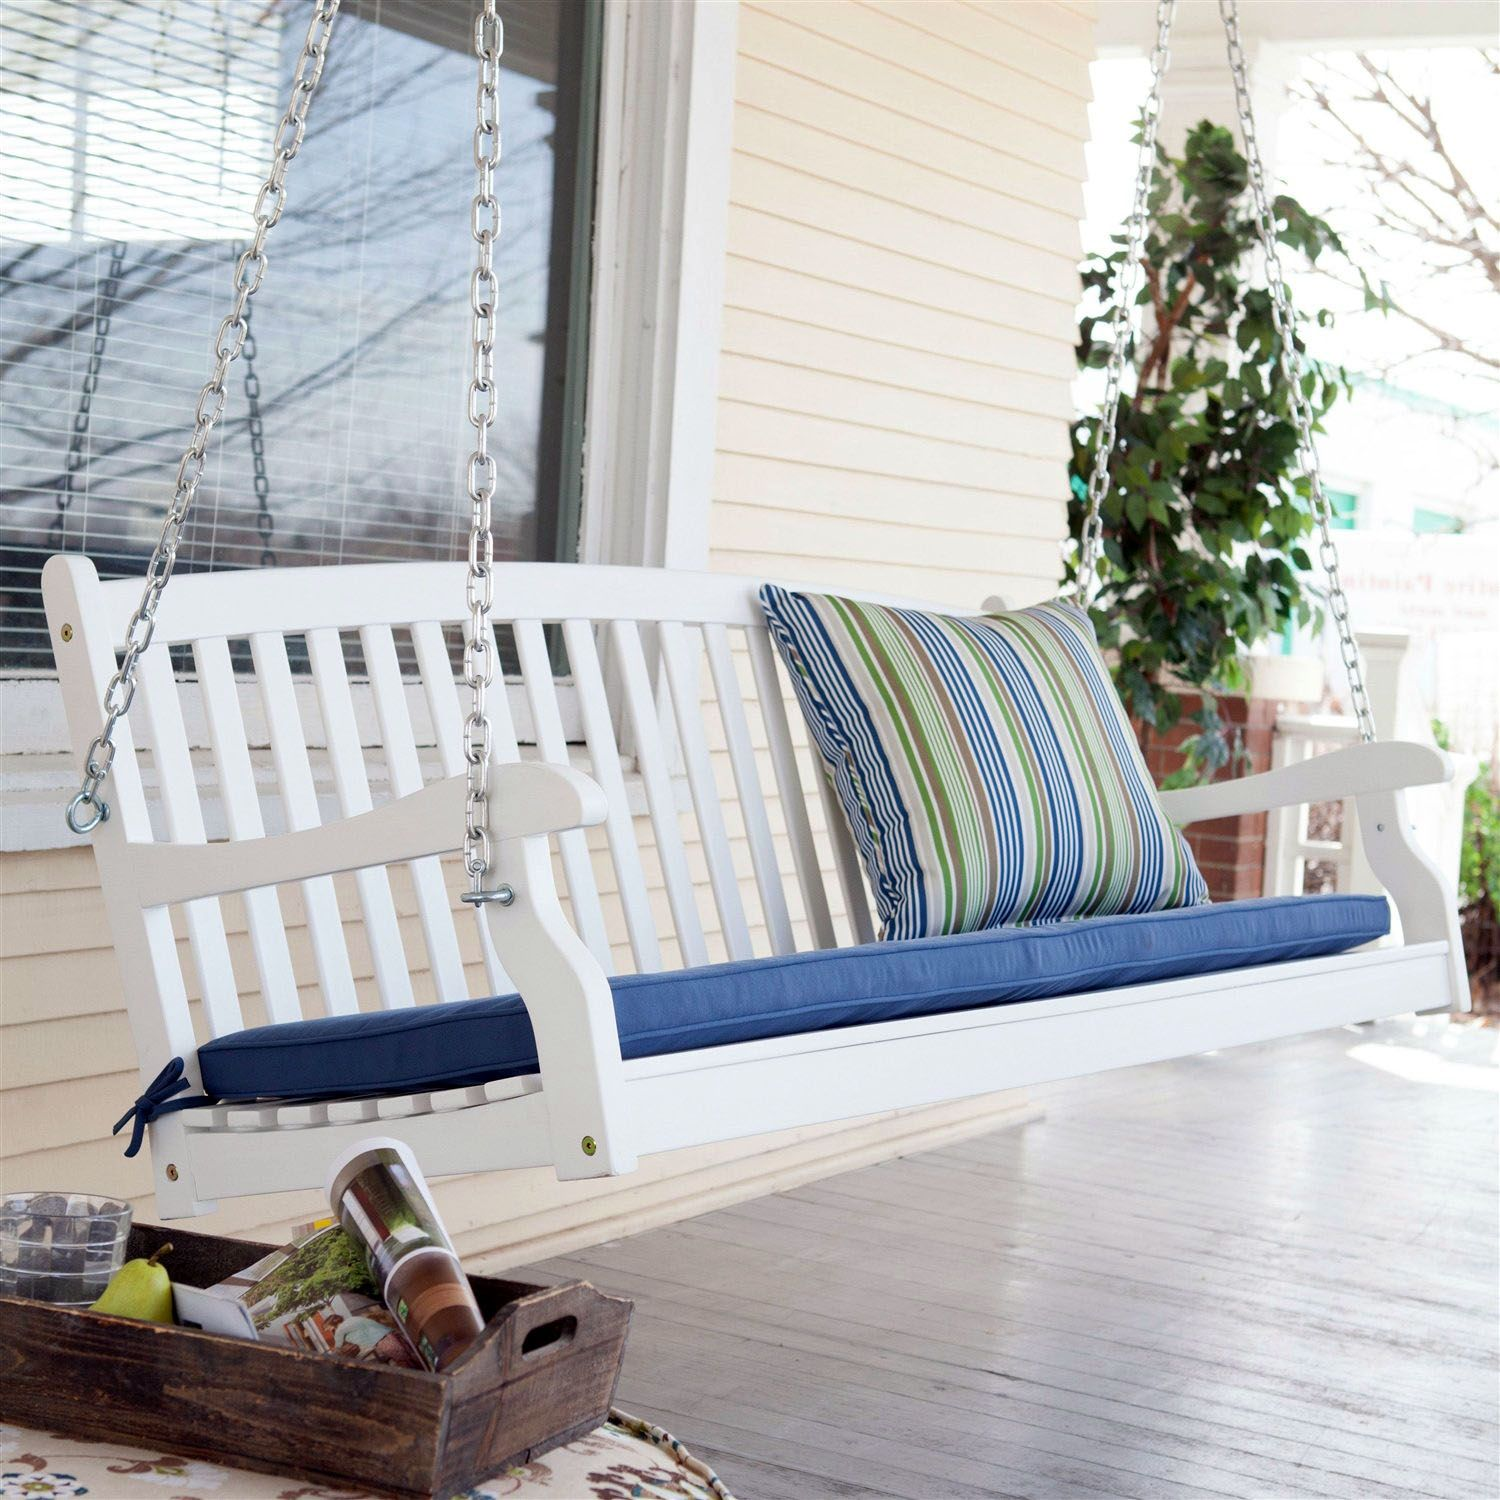 real home inspiration outdoor patio furniture buford ga on porch swing ideas inspiration id=79148